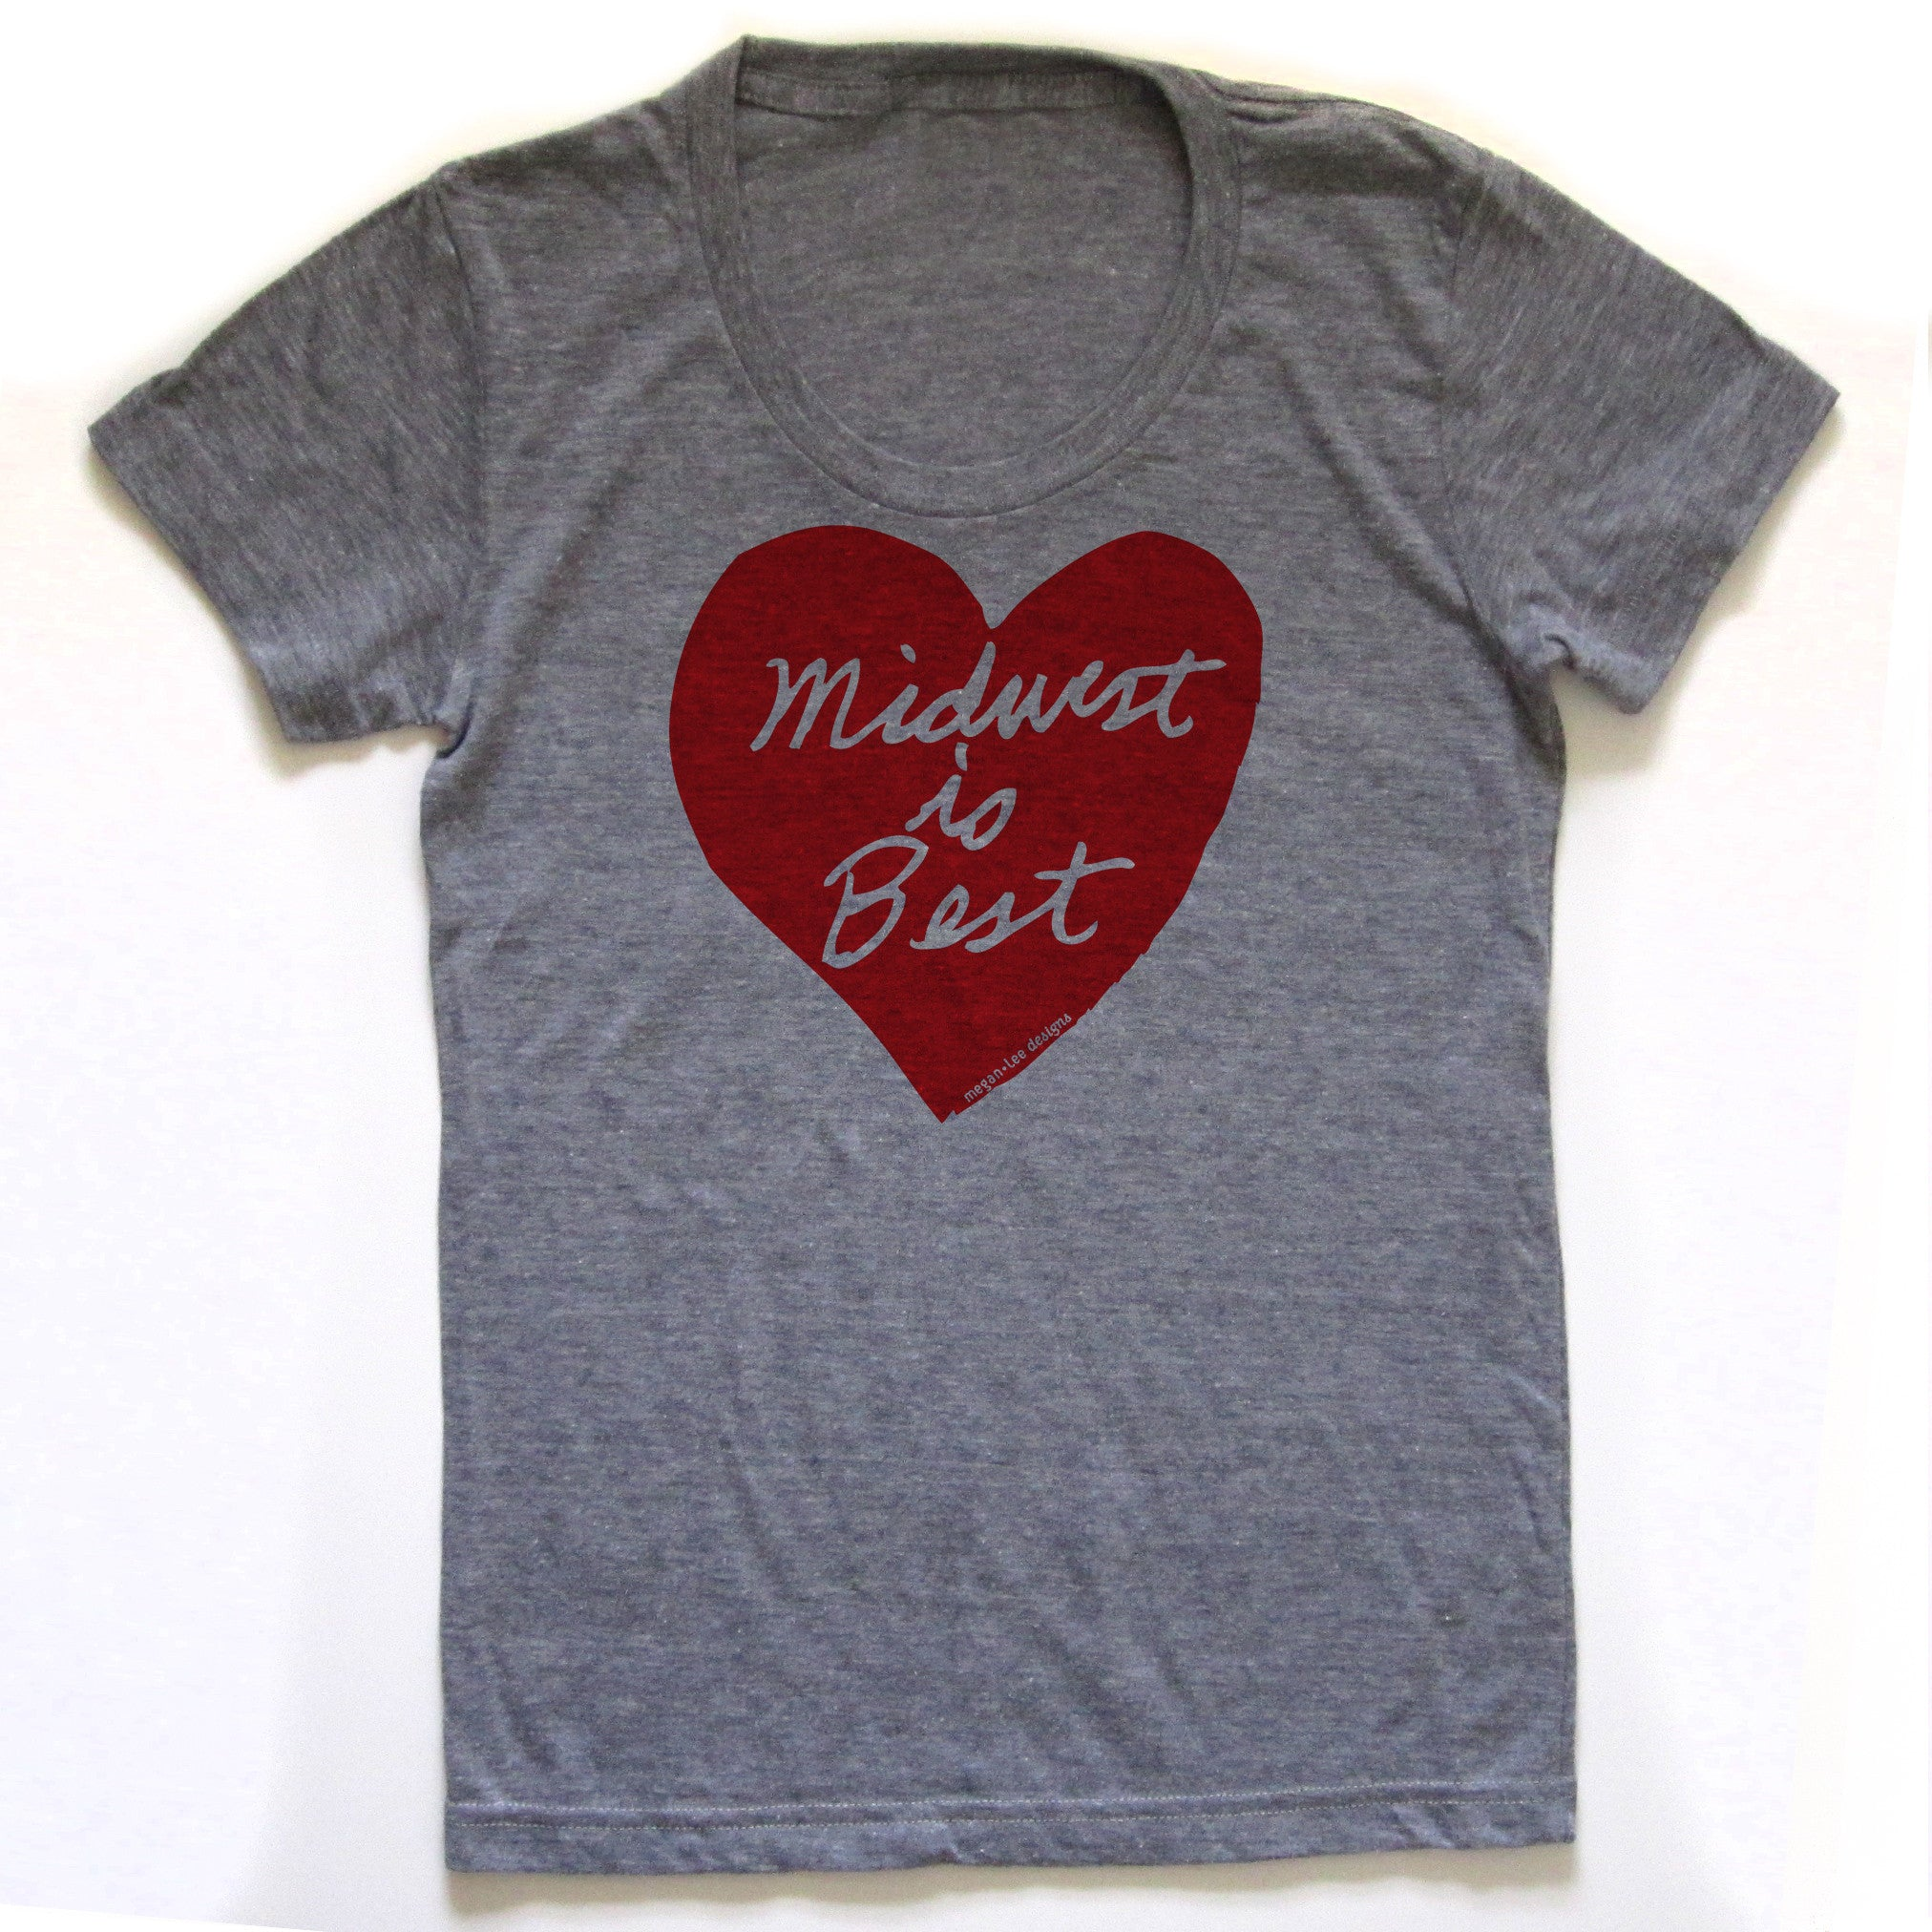 Midwest is Best t-shirt for women